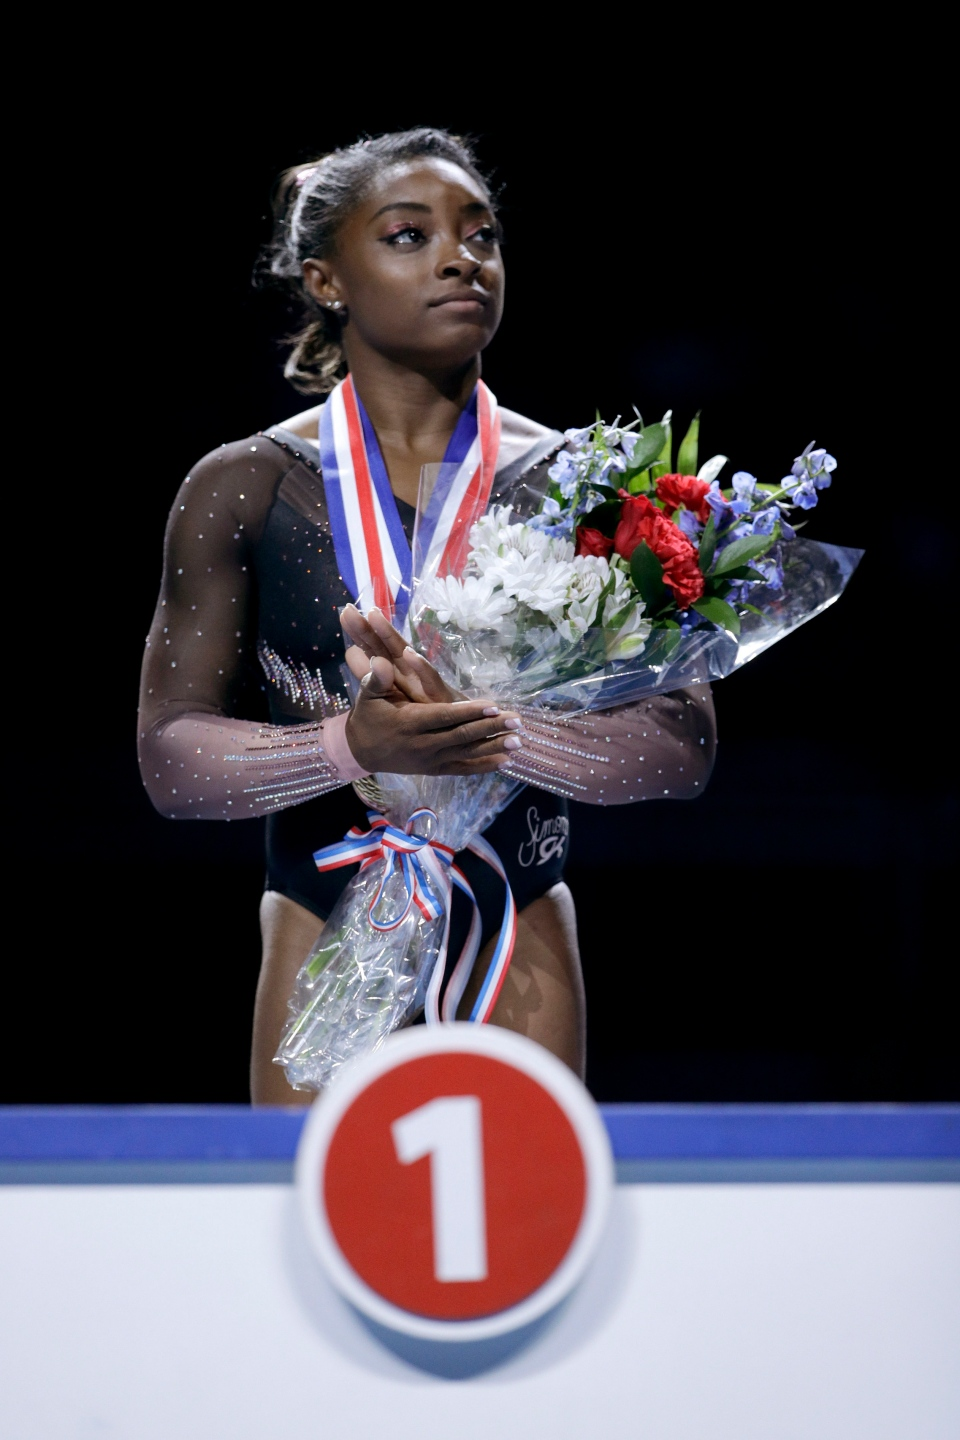 Simone Biles waits to be announced as the all-around winner after the senior women's competition at the 2019 U.S. Gymnastics Championships Sunday, Aug. 11, 2019, in Kansas City, Mo. (AP Photo/Charlie Riedel)